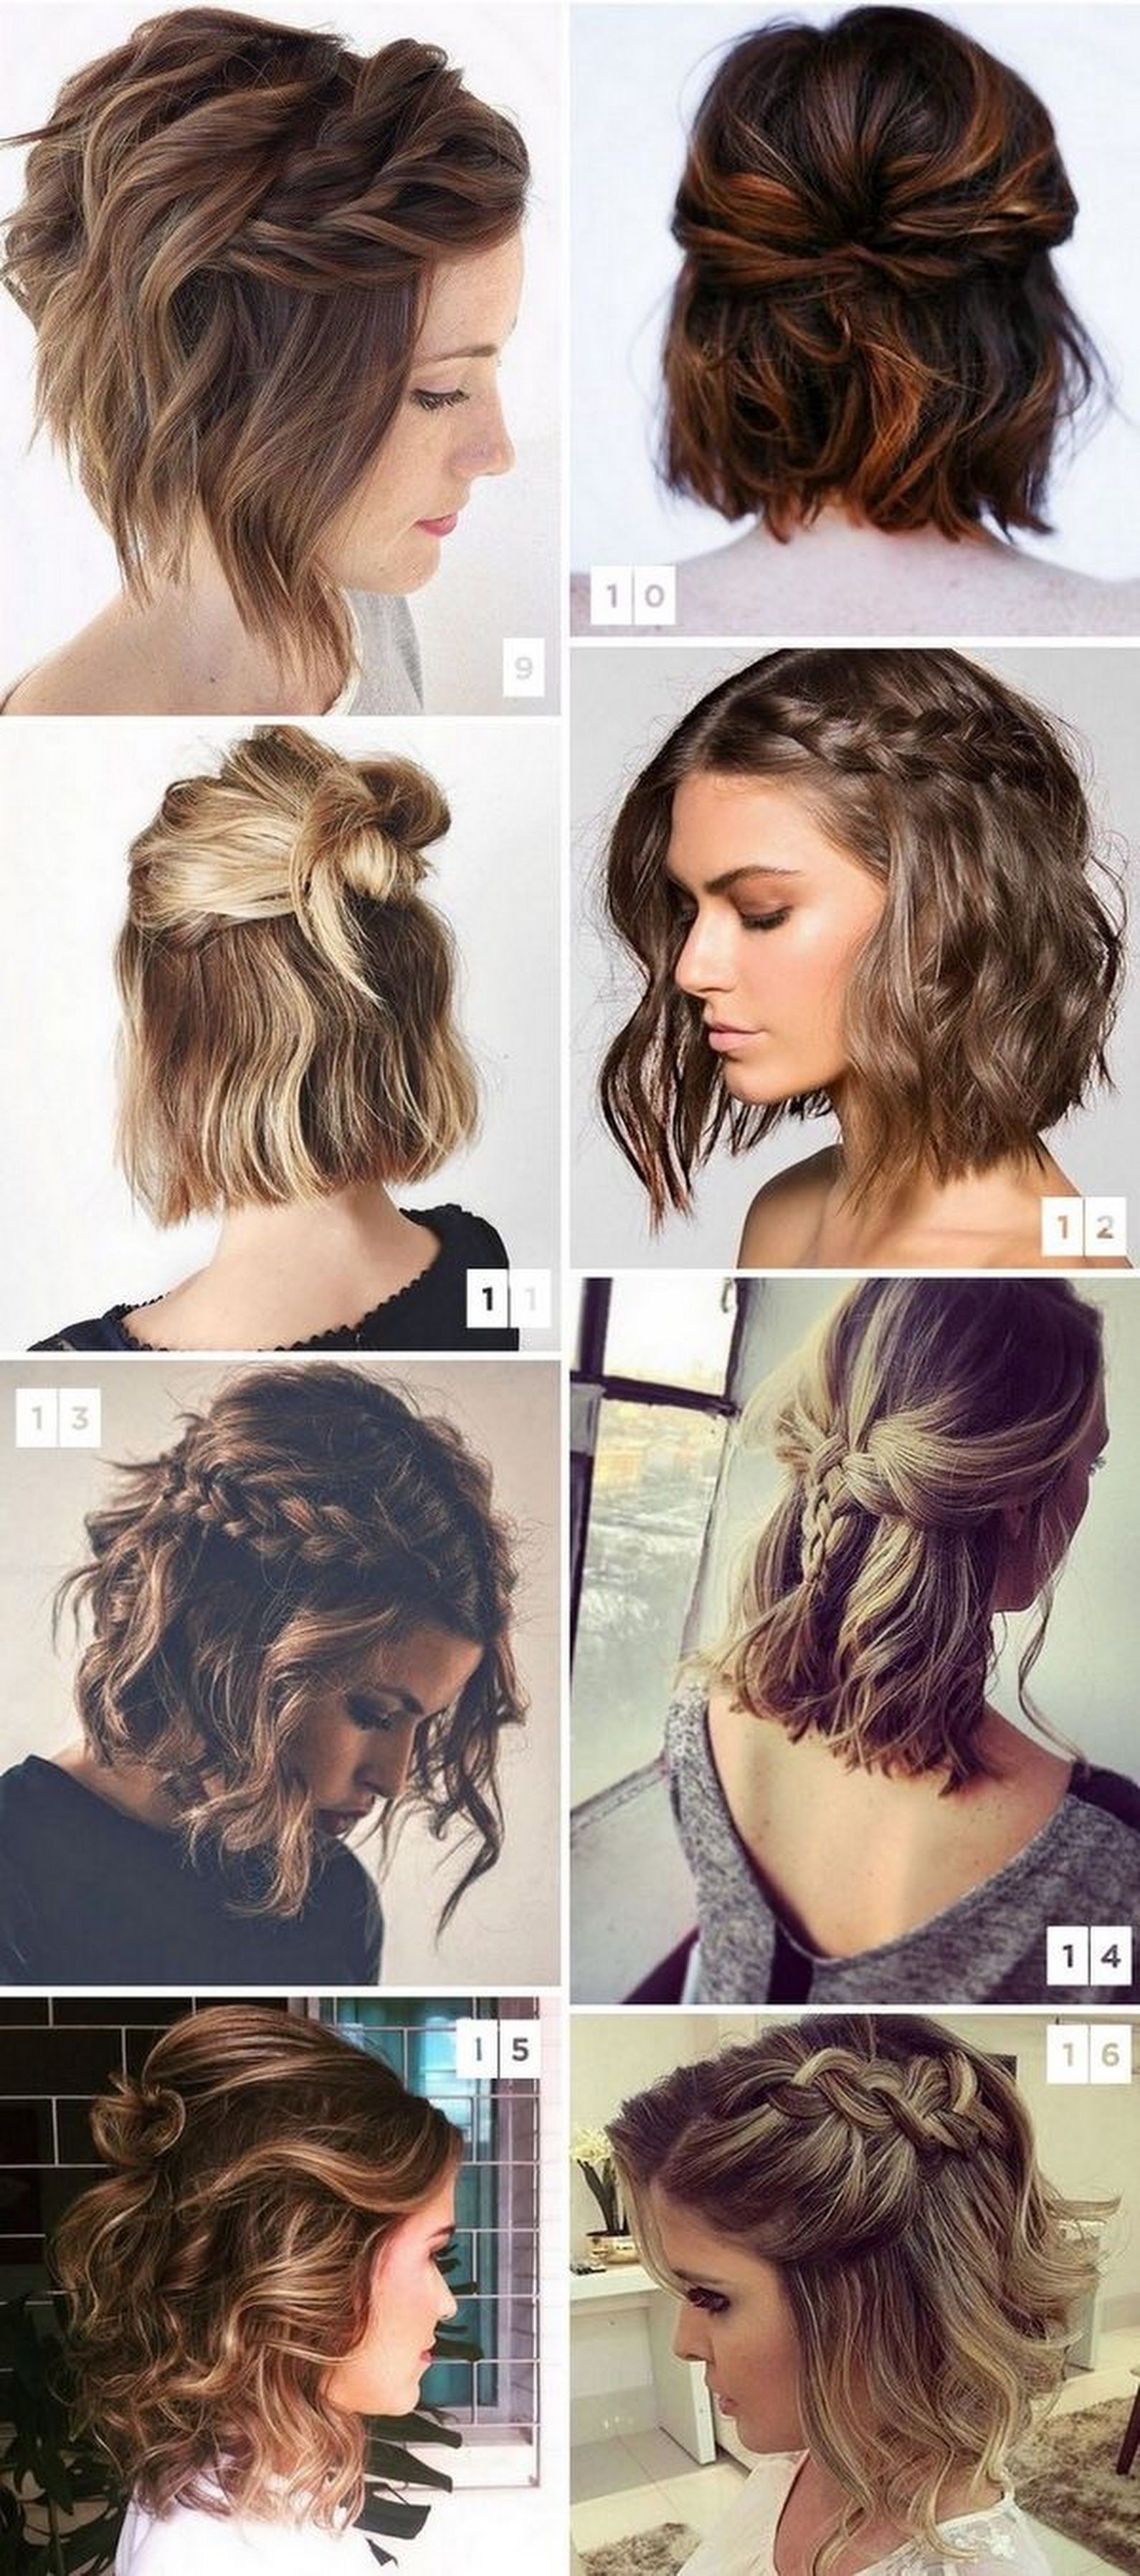 Sign In Short Hair Styles Cute Hairstyles For Short Hair Hair Styles